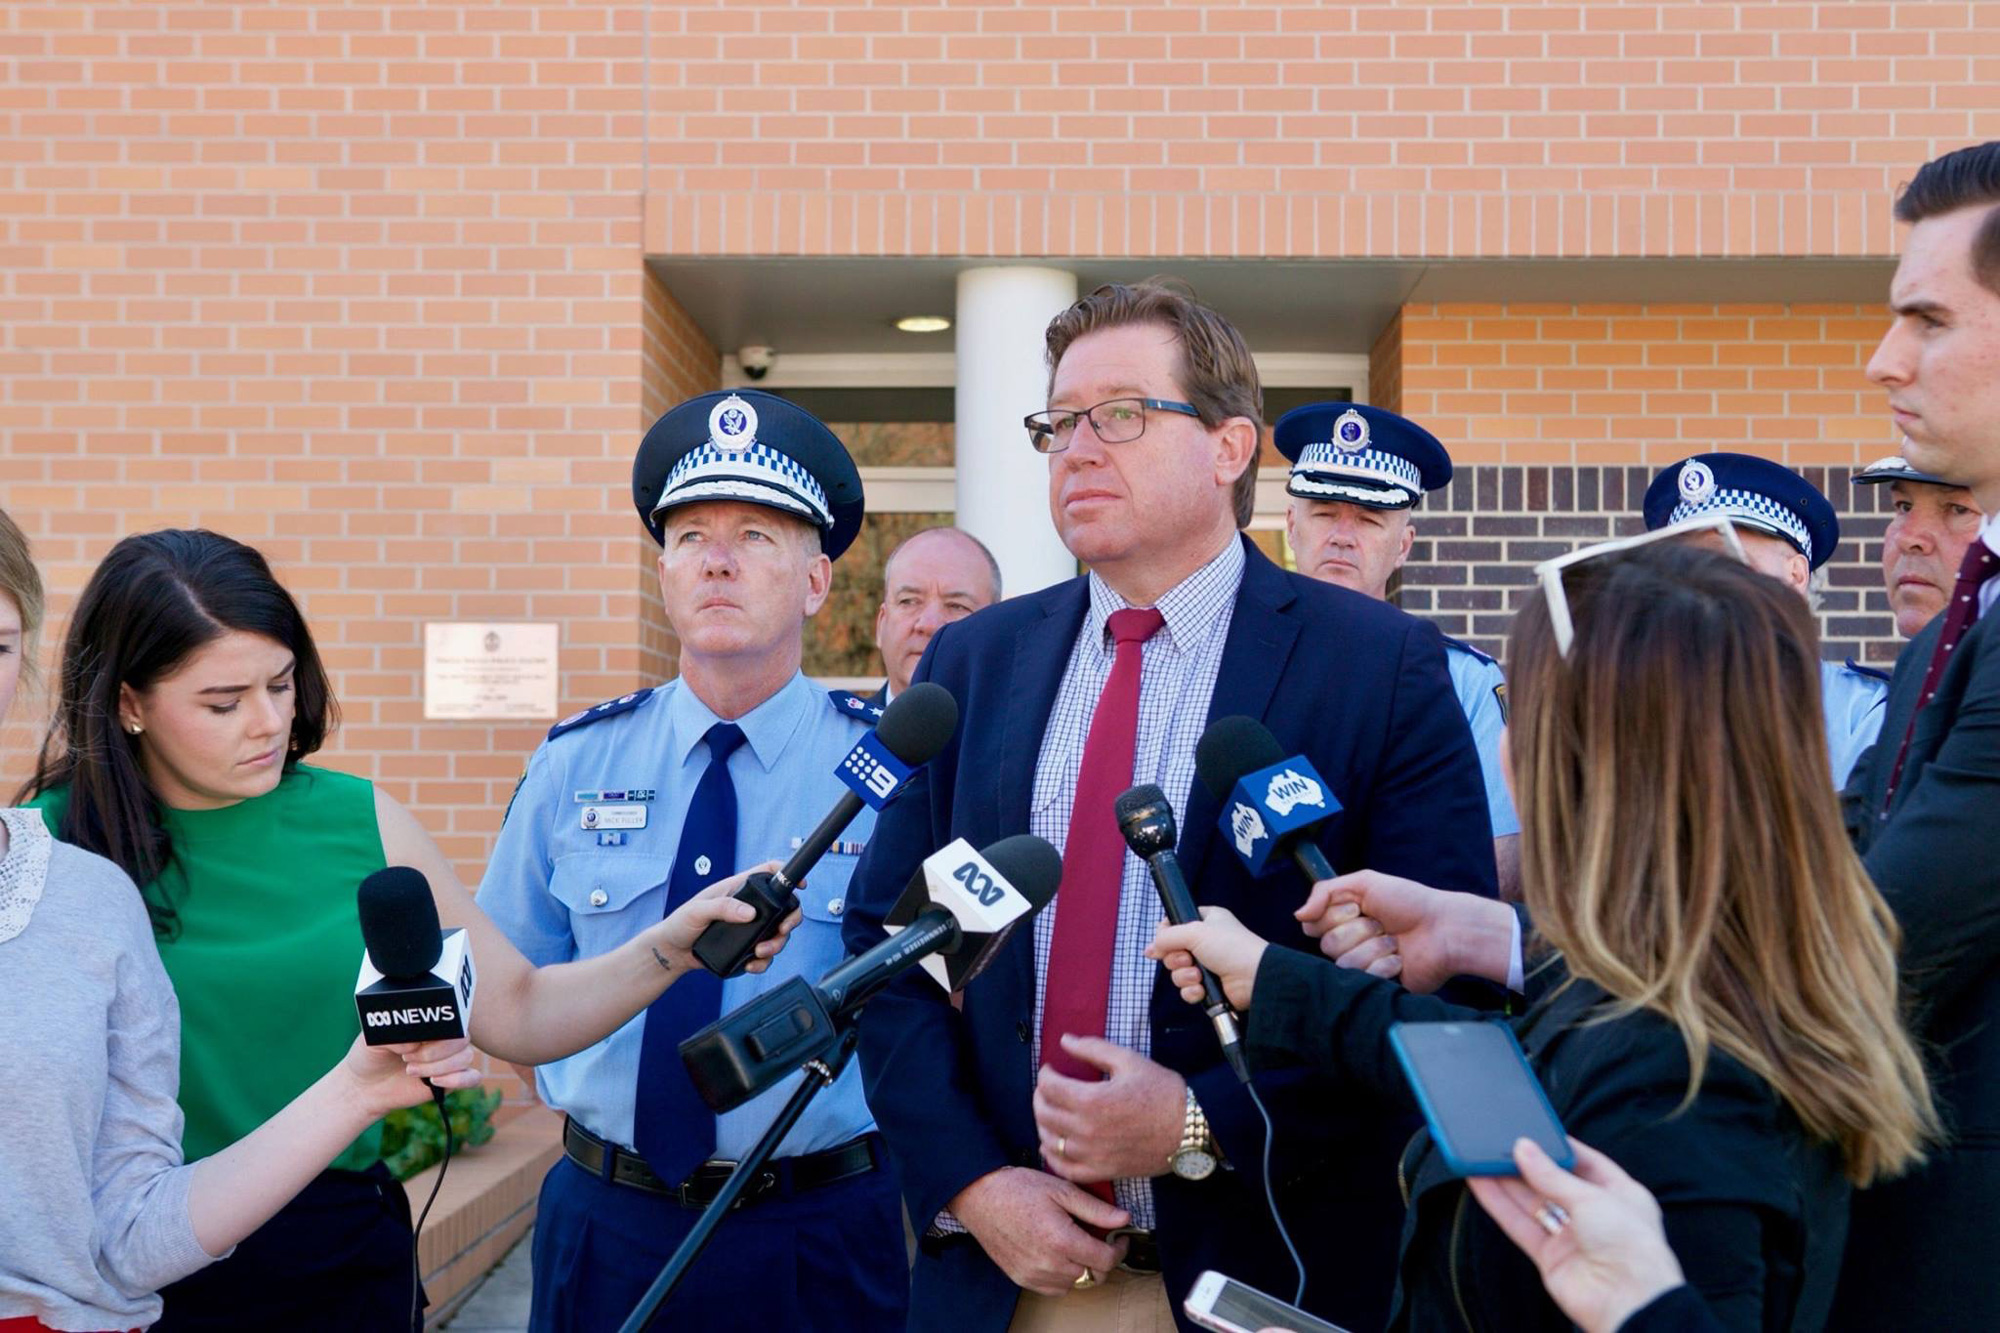 Troy-Grant-About-Police-Force-web.jpg